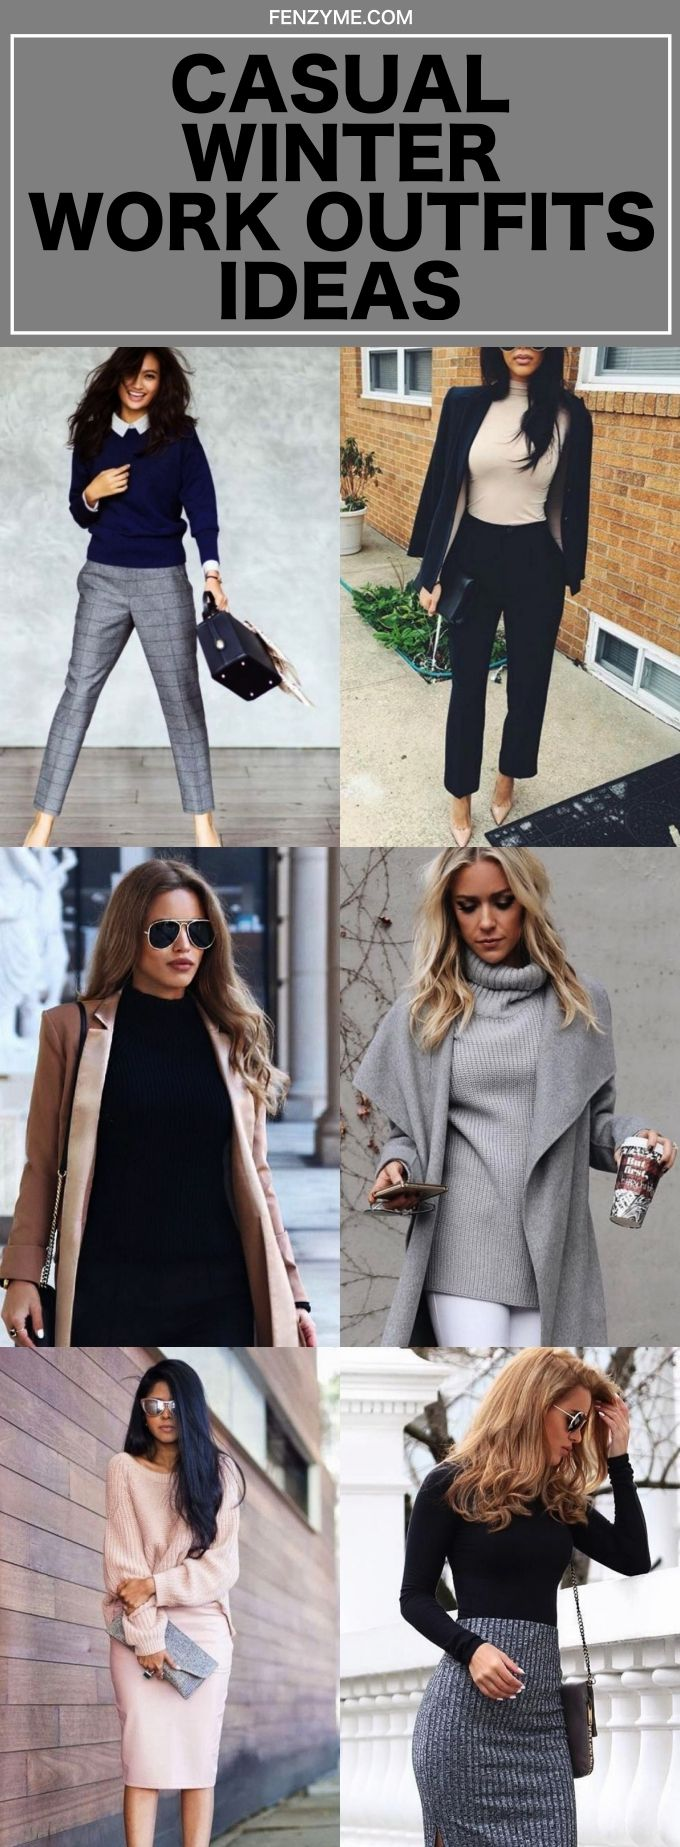 42 Casual Winter Work Outfits Ideas 2018 | Casual winter, Work